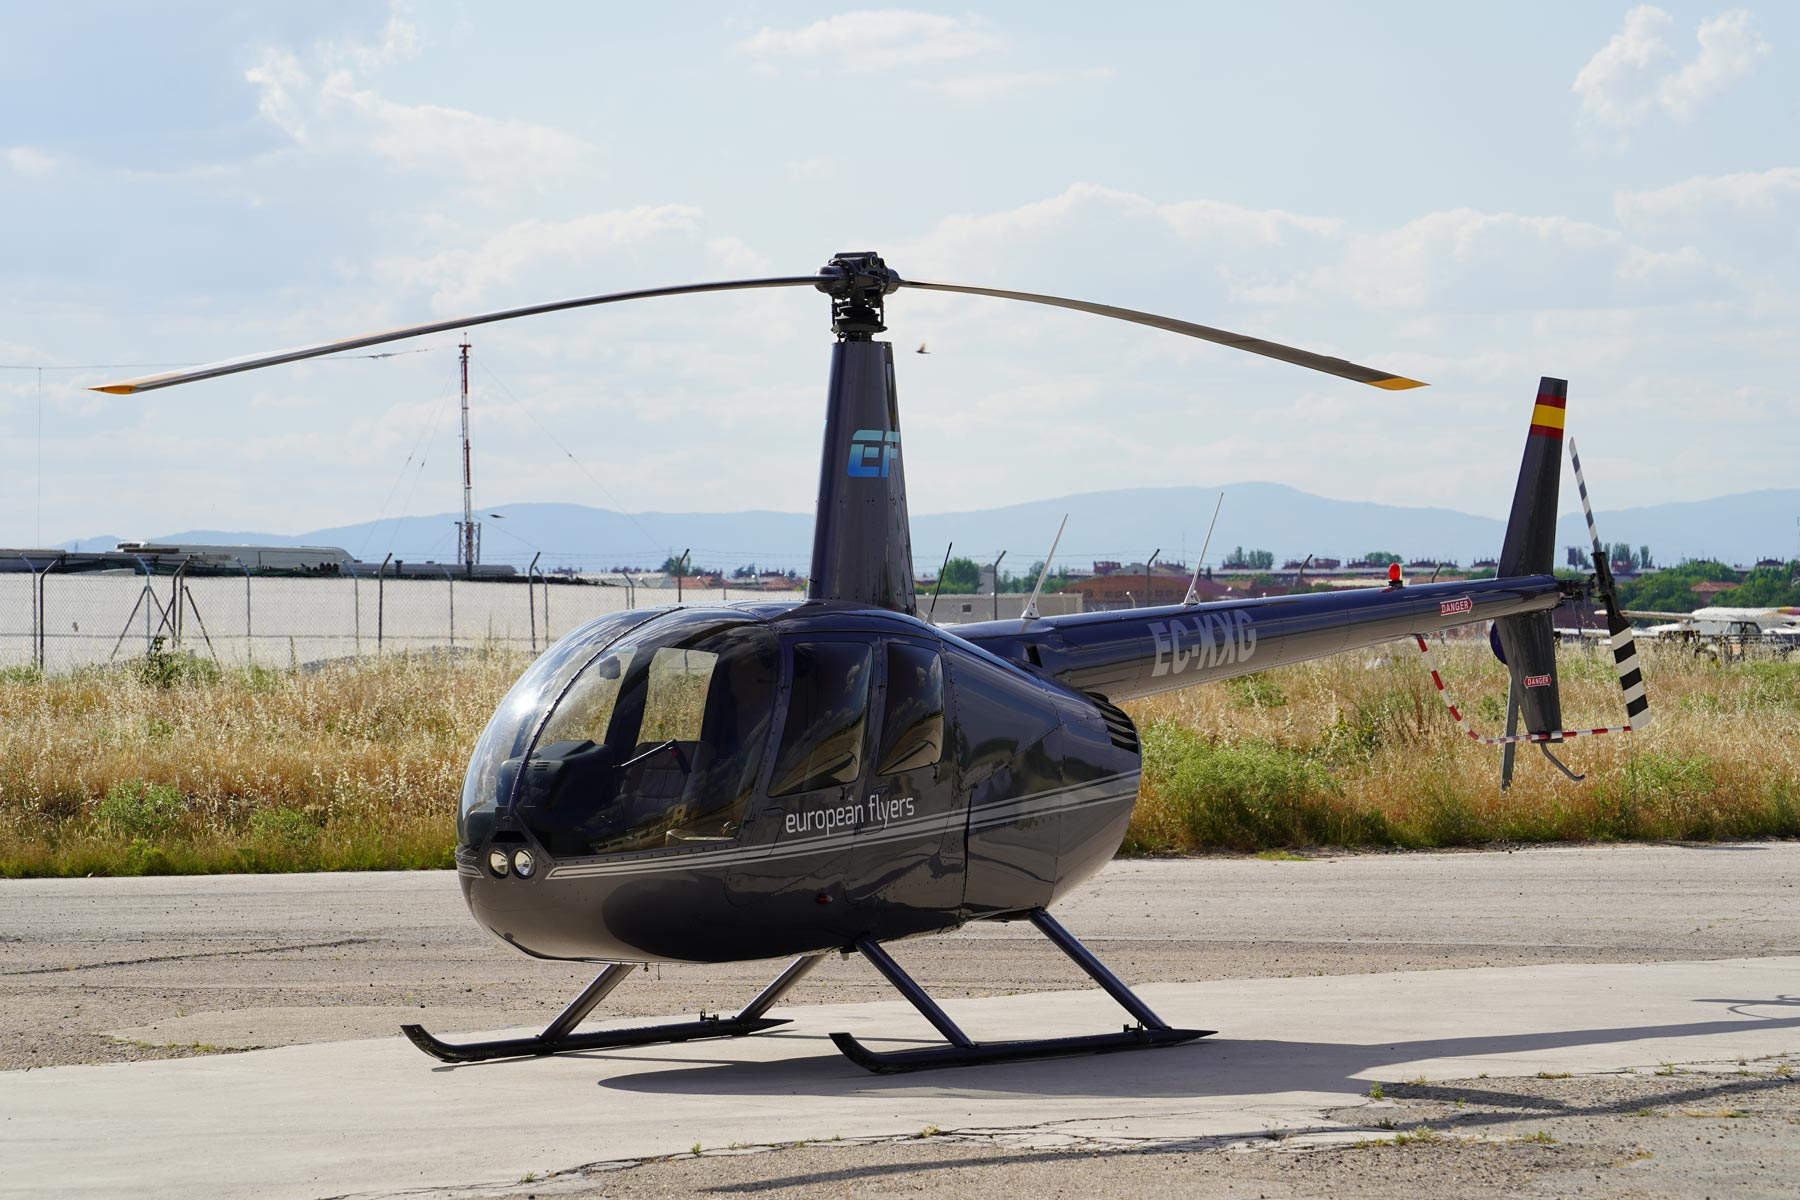 Private Helicopter Pilot Licence – PPL